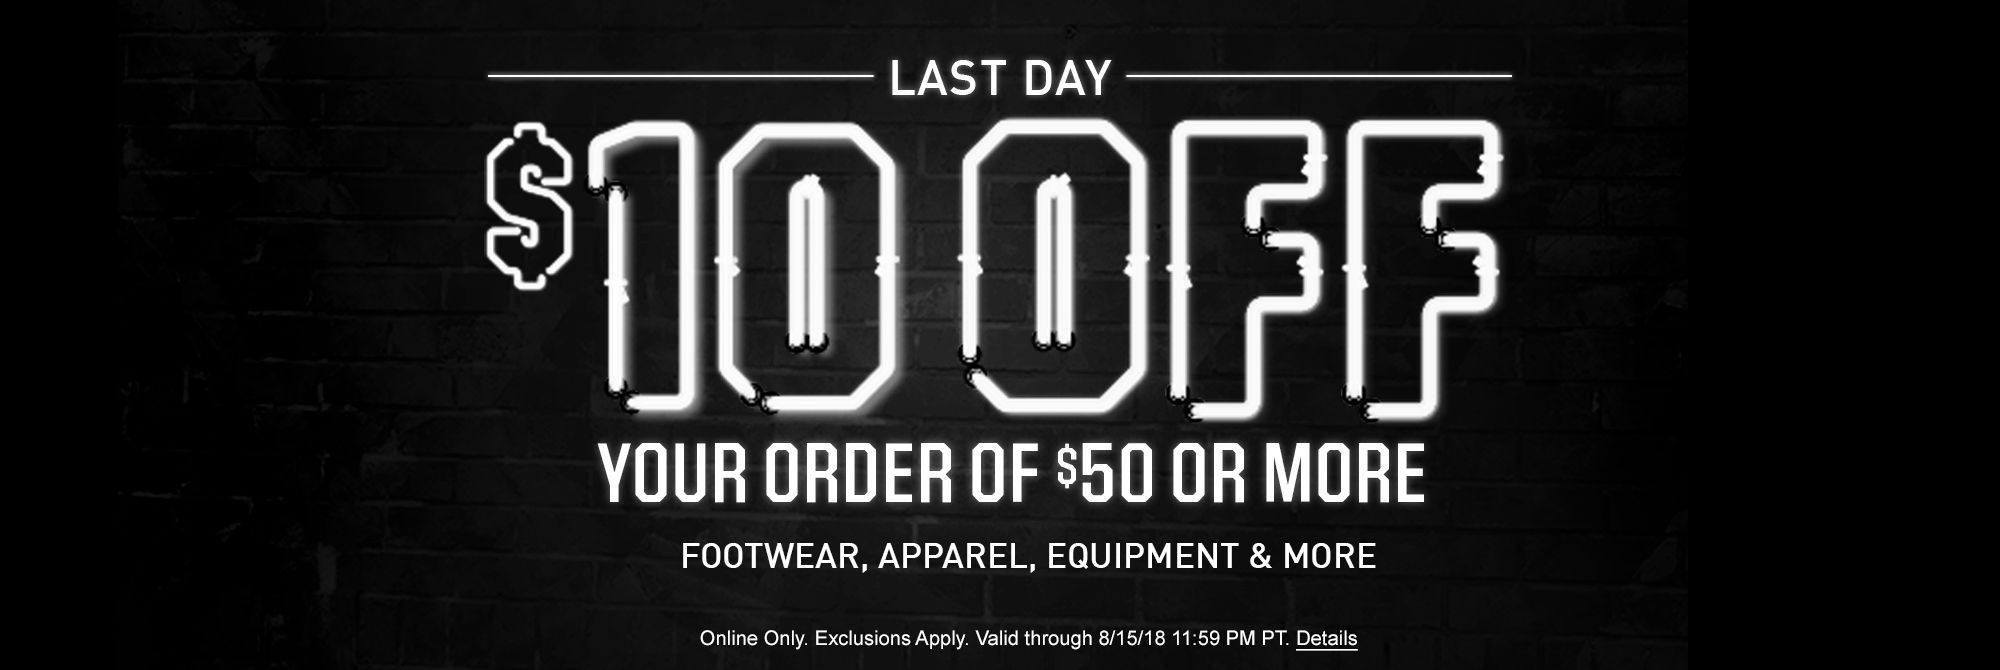 Last Day - $10 Off your order of $100 Or More | Online Only. Exclusions Apply. Valid through 8/15/18 11:59 PM PT | Click for Details